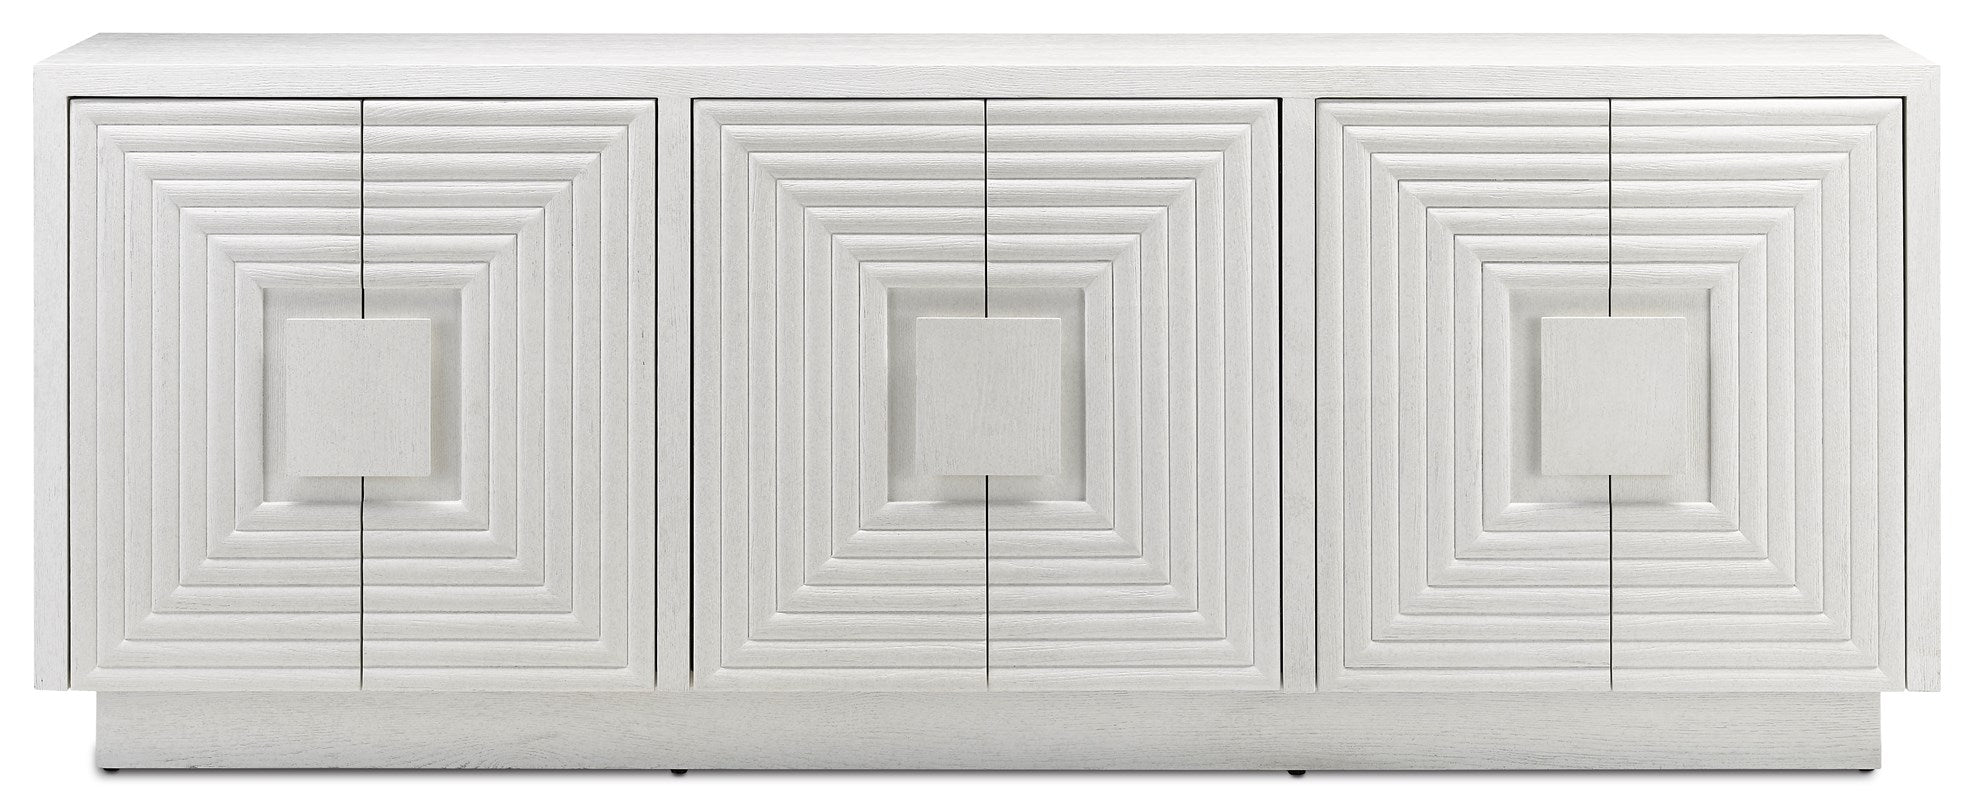 Currey and Company Morombe White Credenza 3000-0152